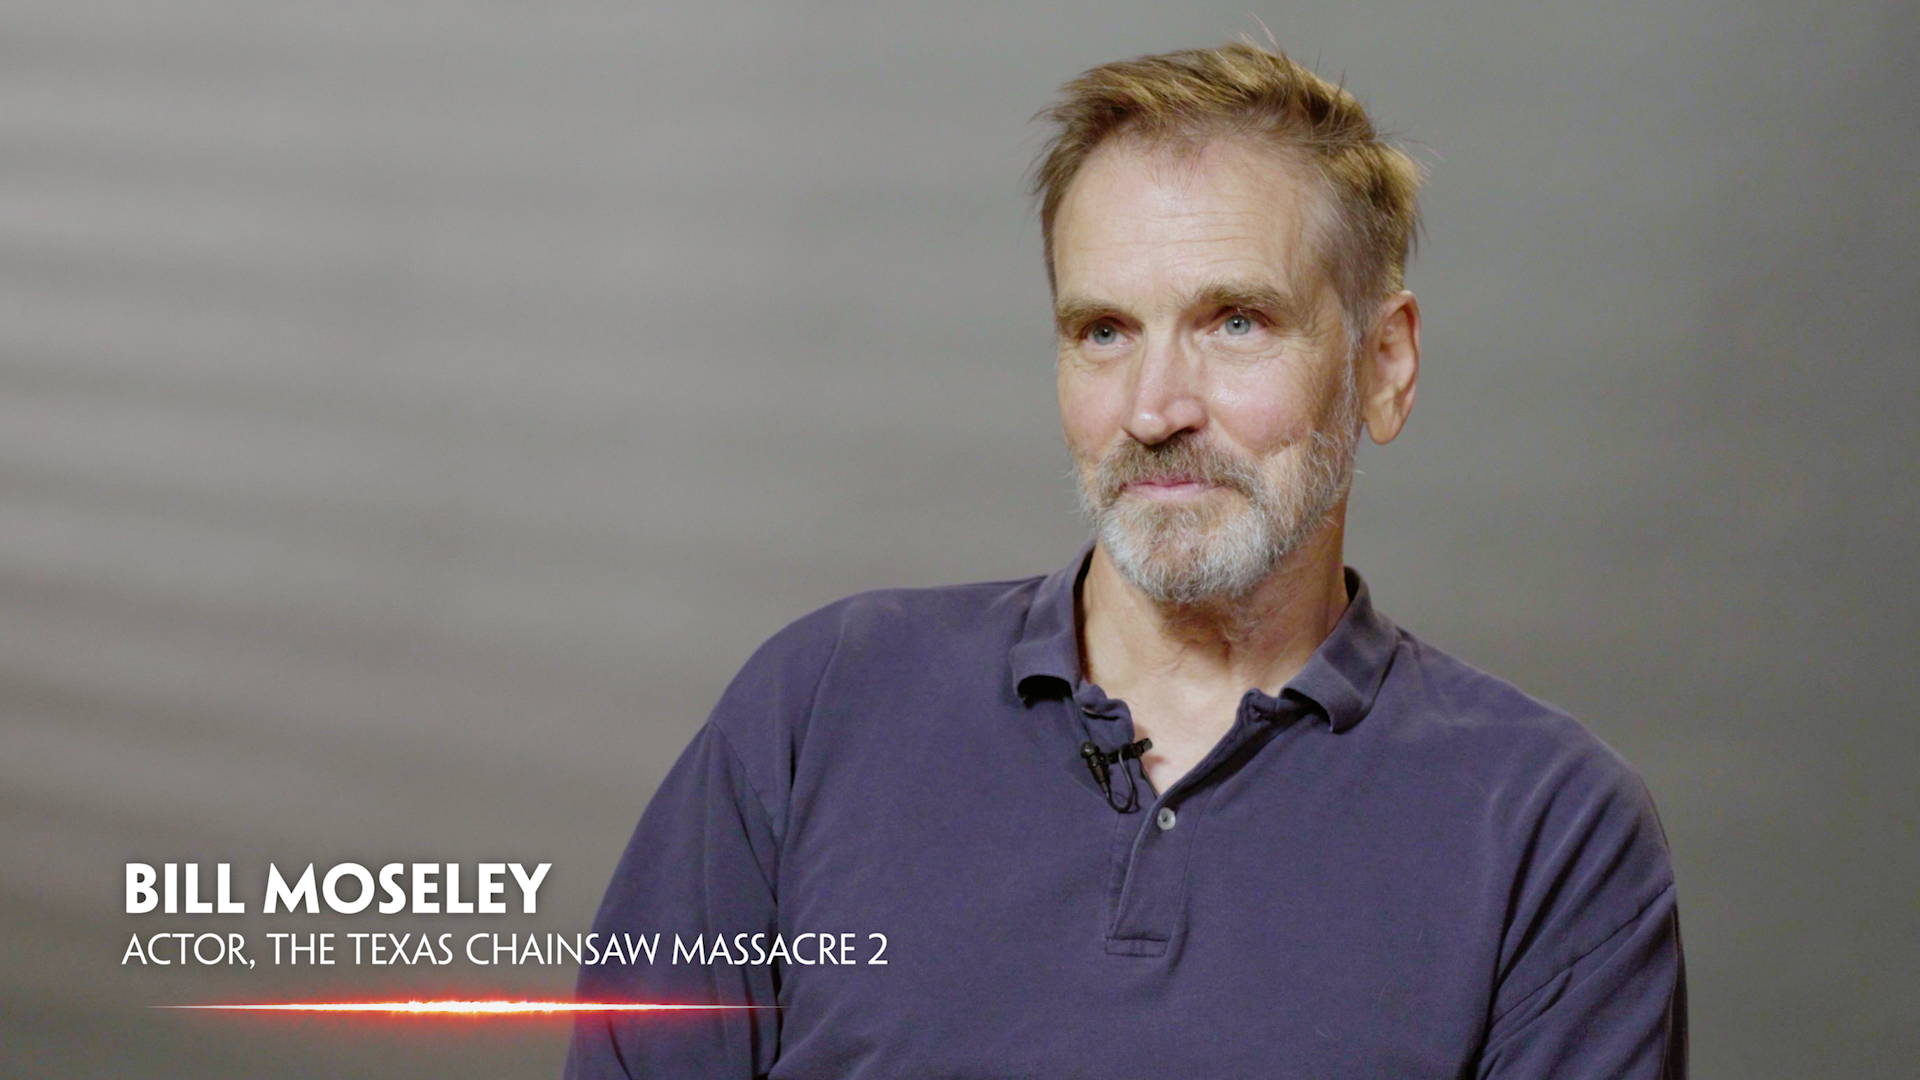 In Search of Darkness Part II: Bill Moseley interview